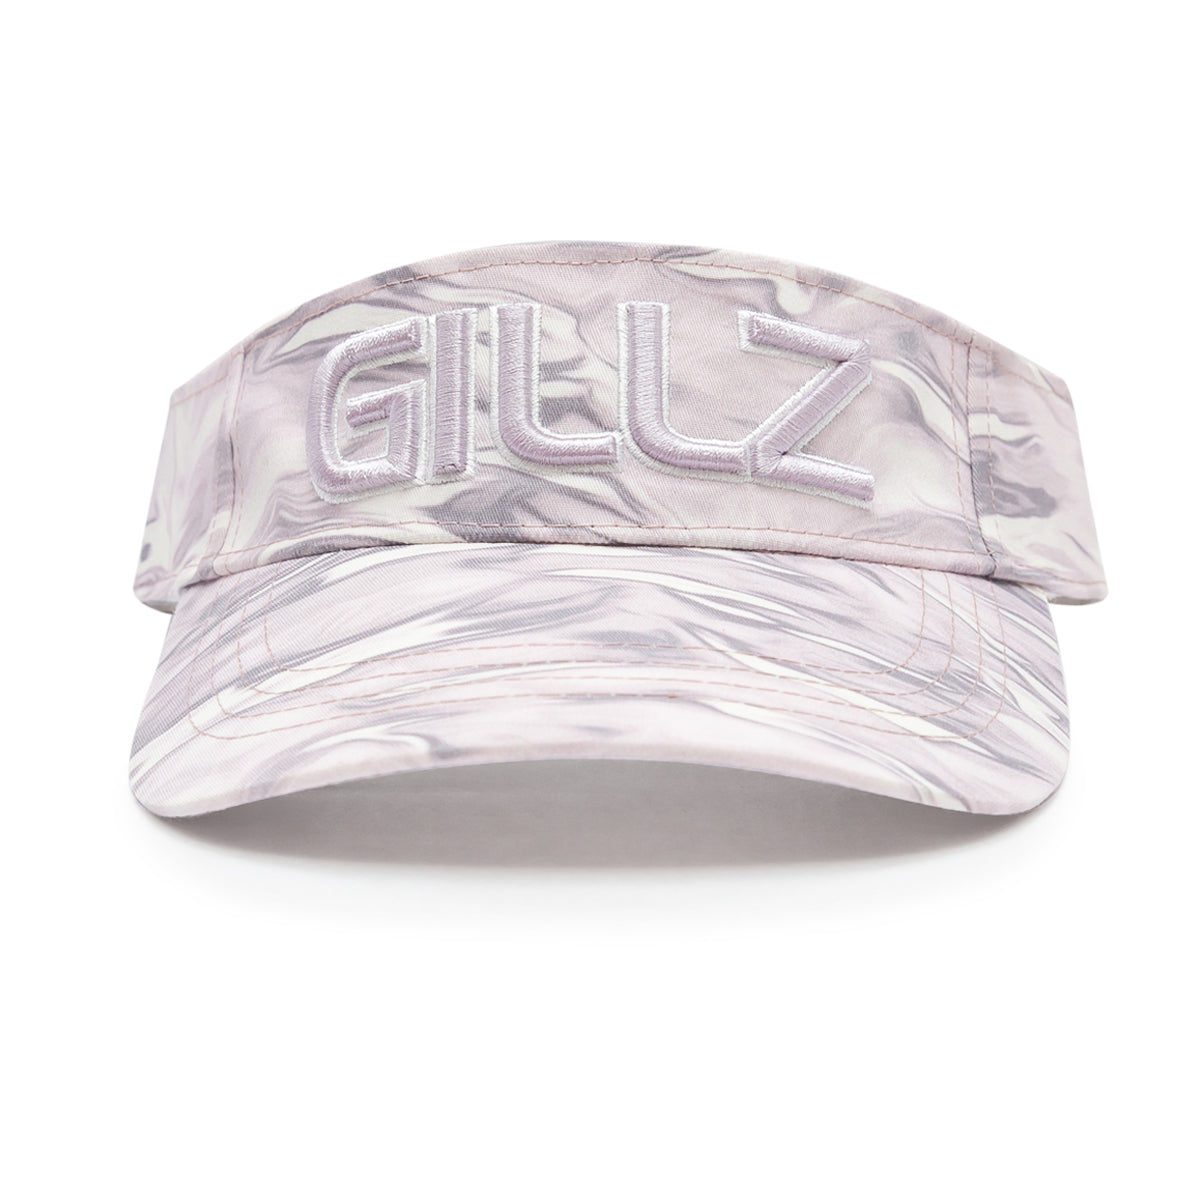 Women's Visors -Water Print